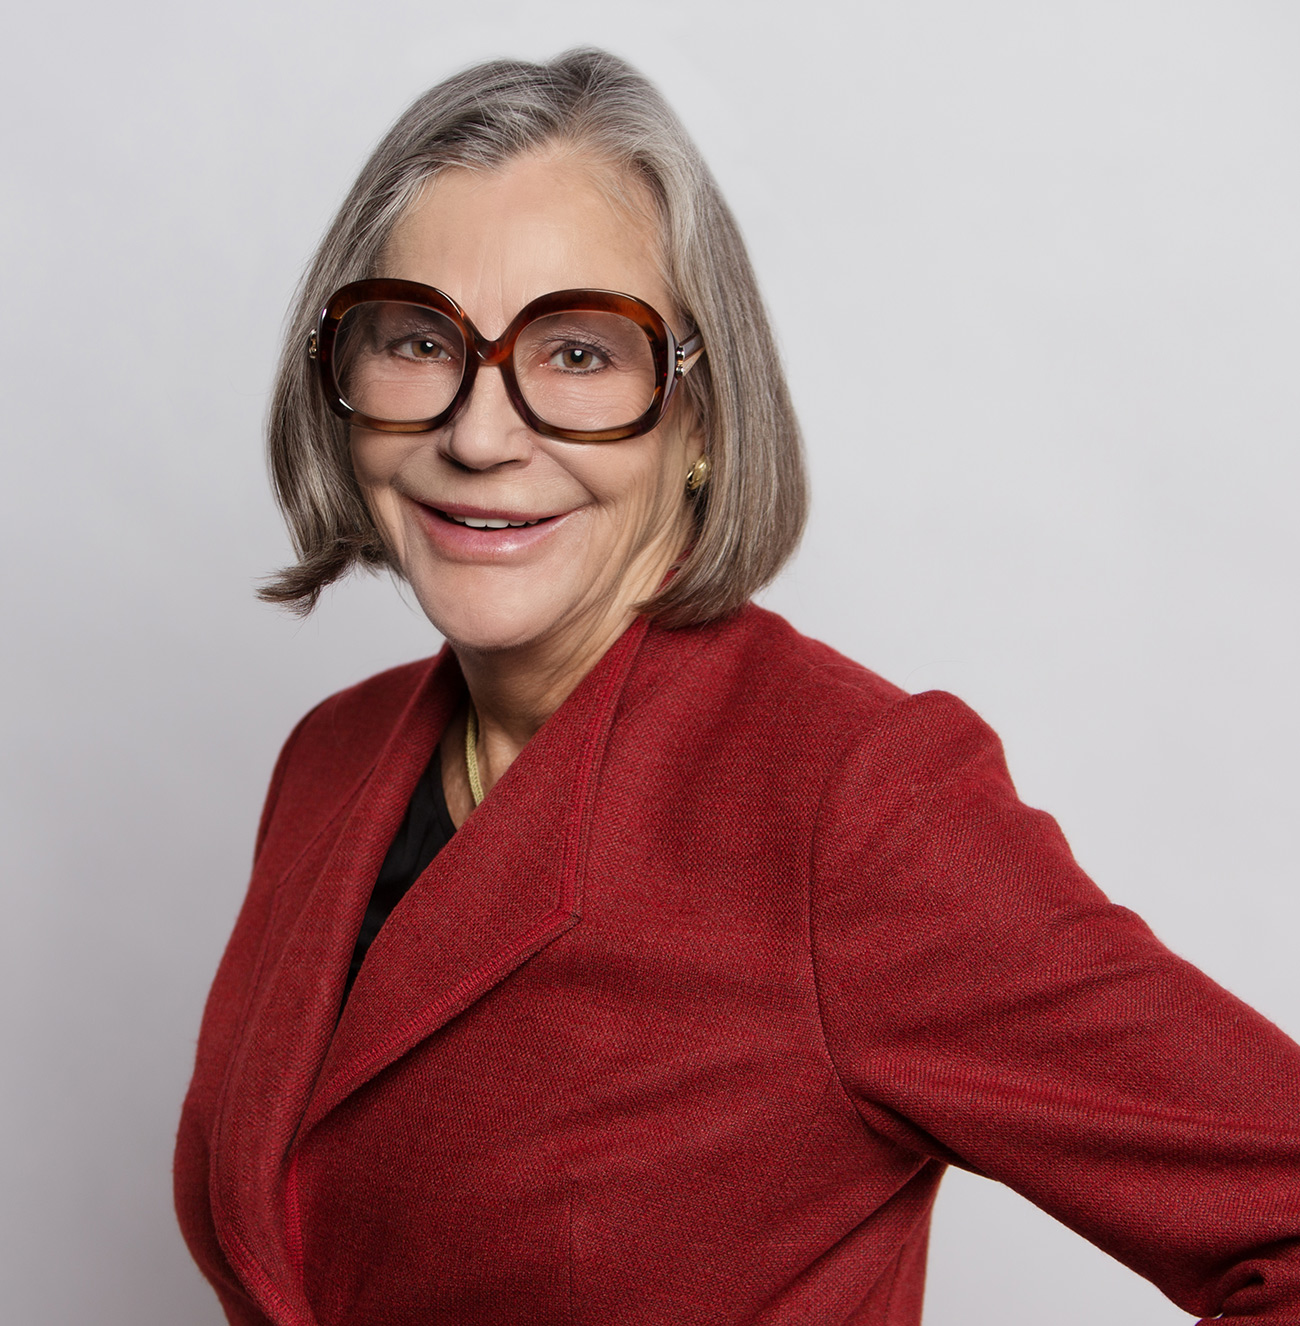 Alice Walton wears a red jacket and large-framed glasses